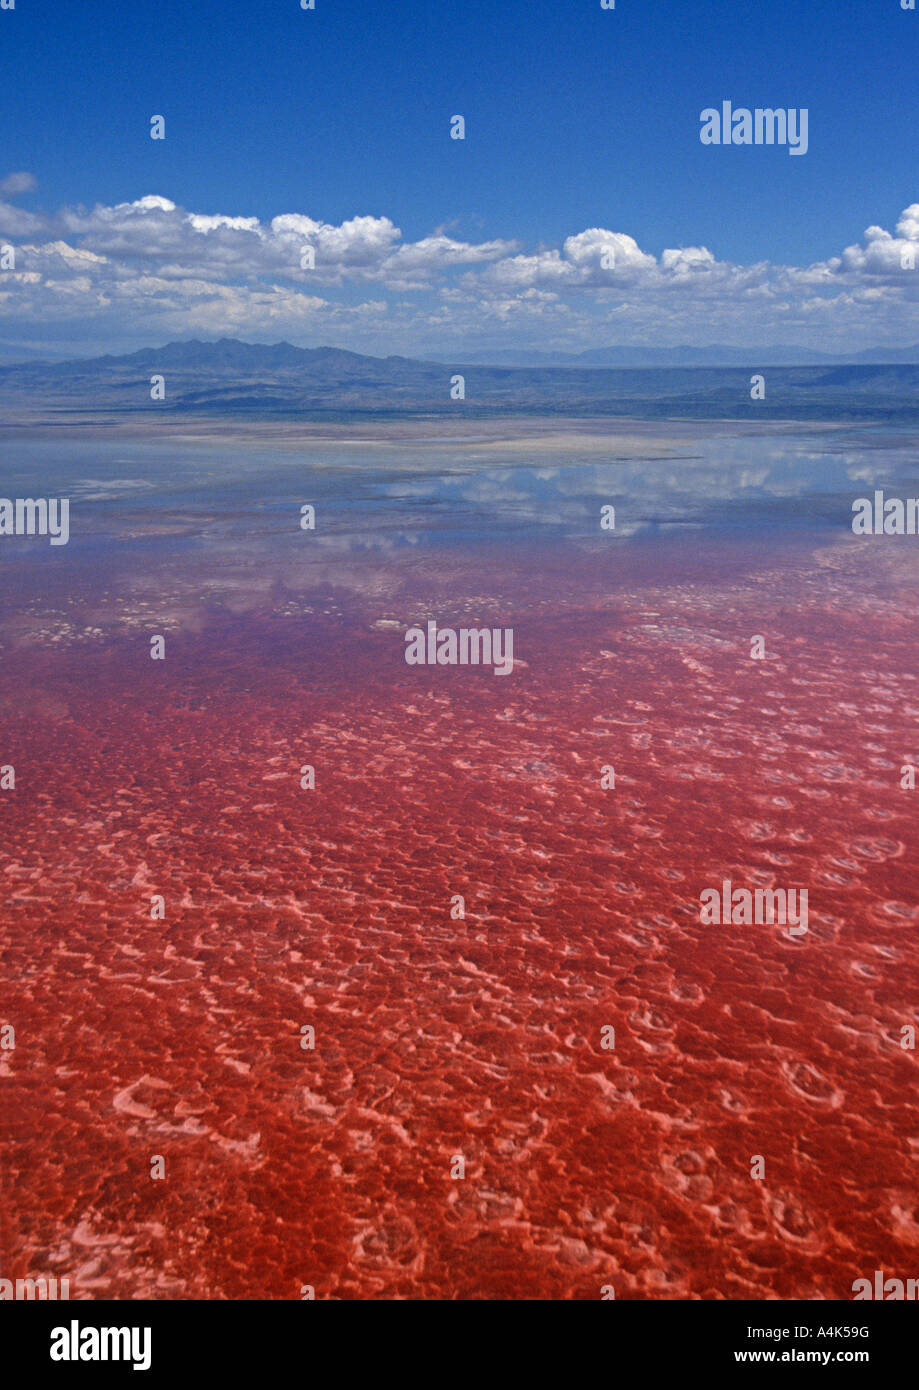 Lake Natron, Tanzania, the red pigment in the cyanobacteria produce the deep reds of the open water - Stock Image